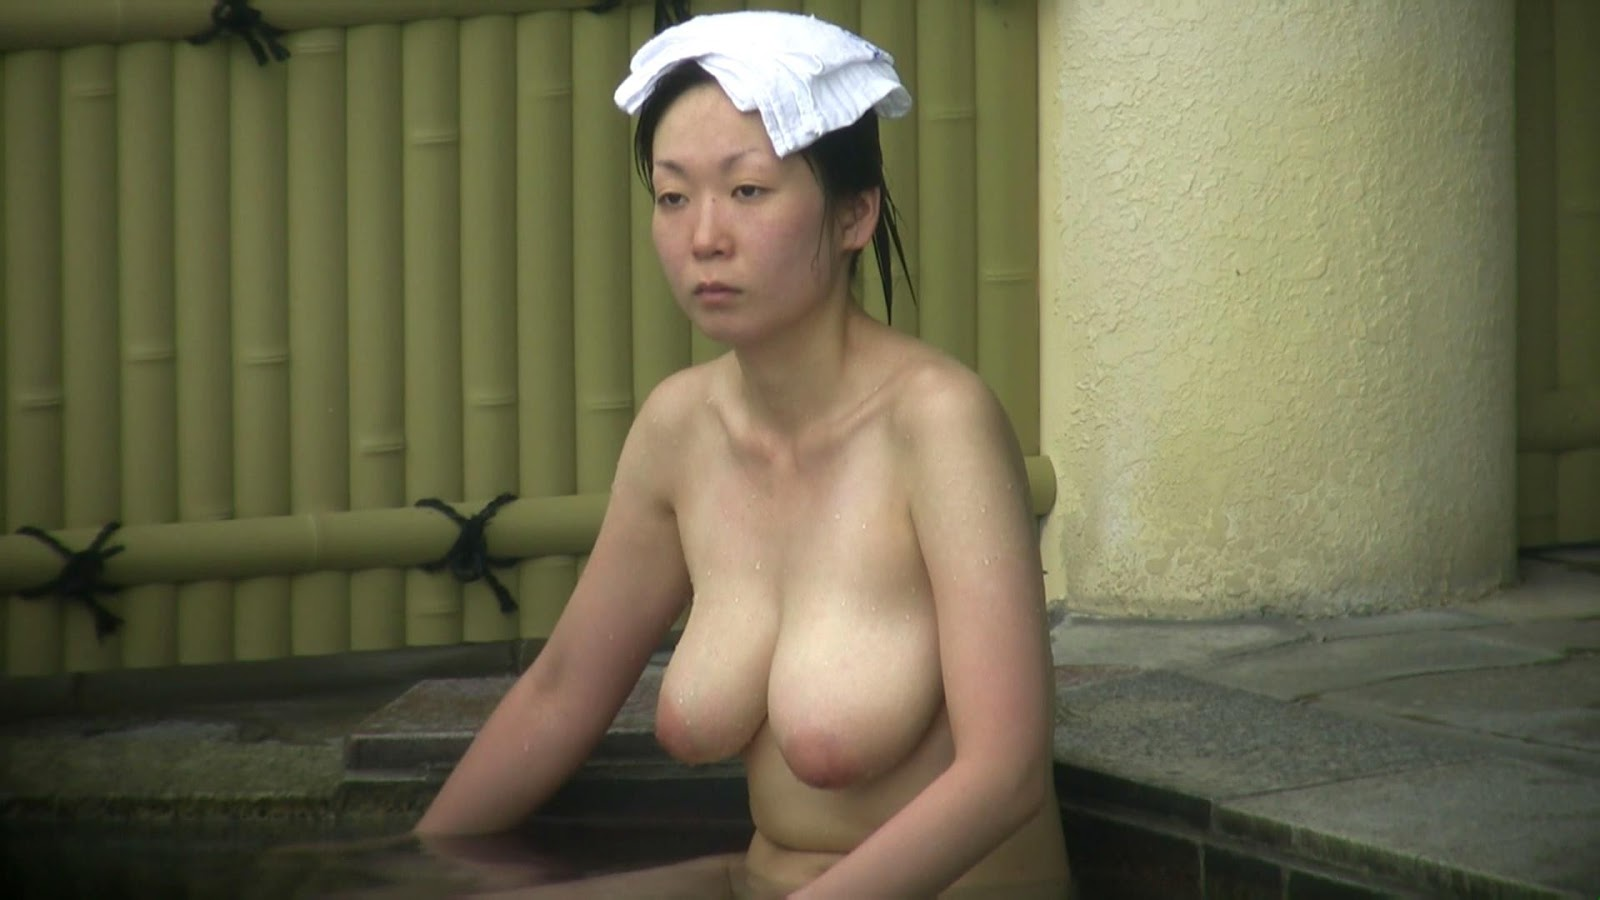 nice action with professional slut